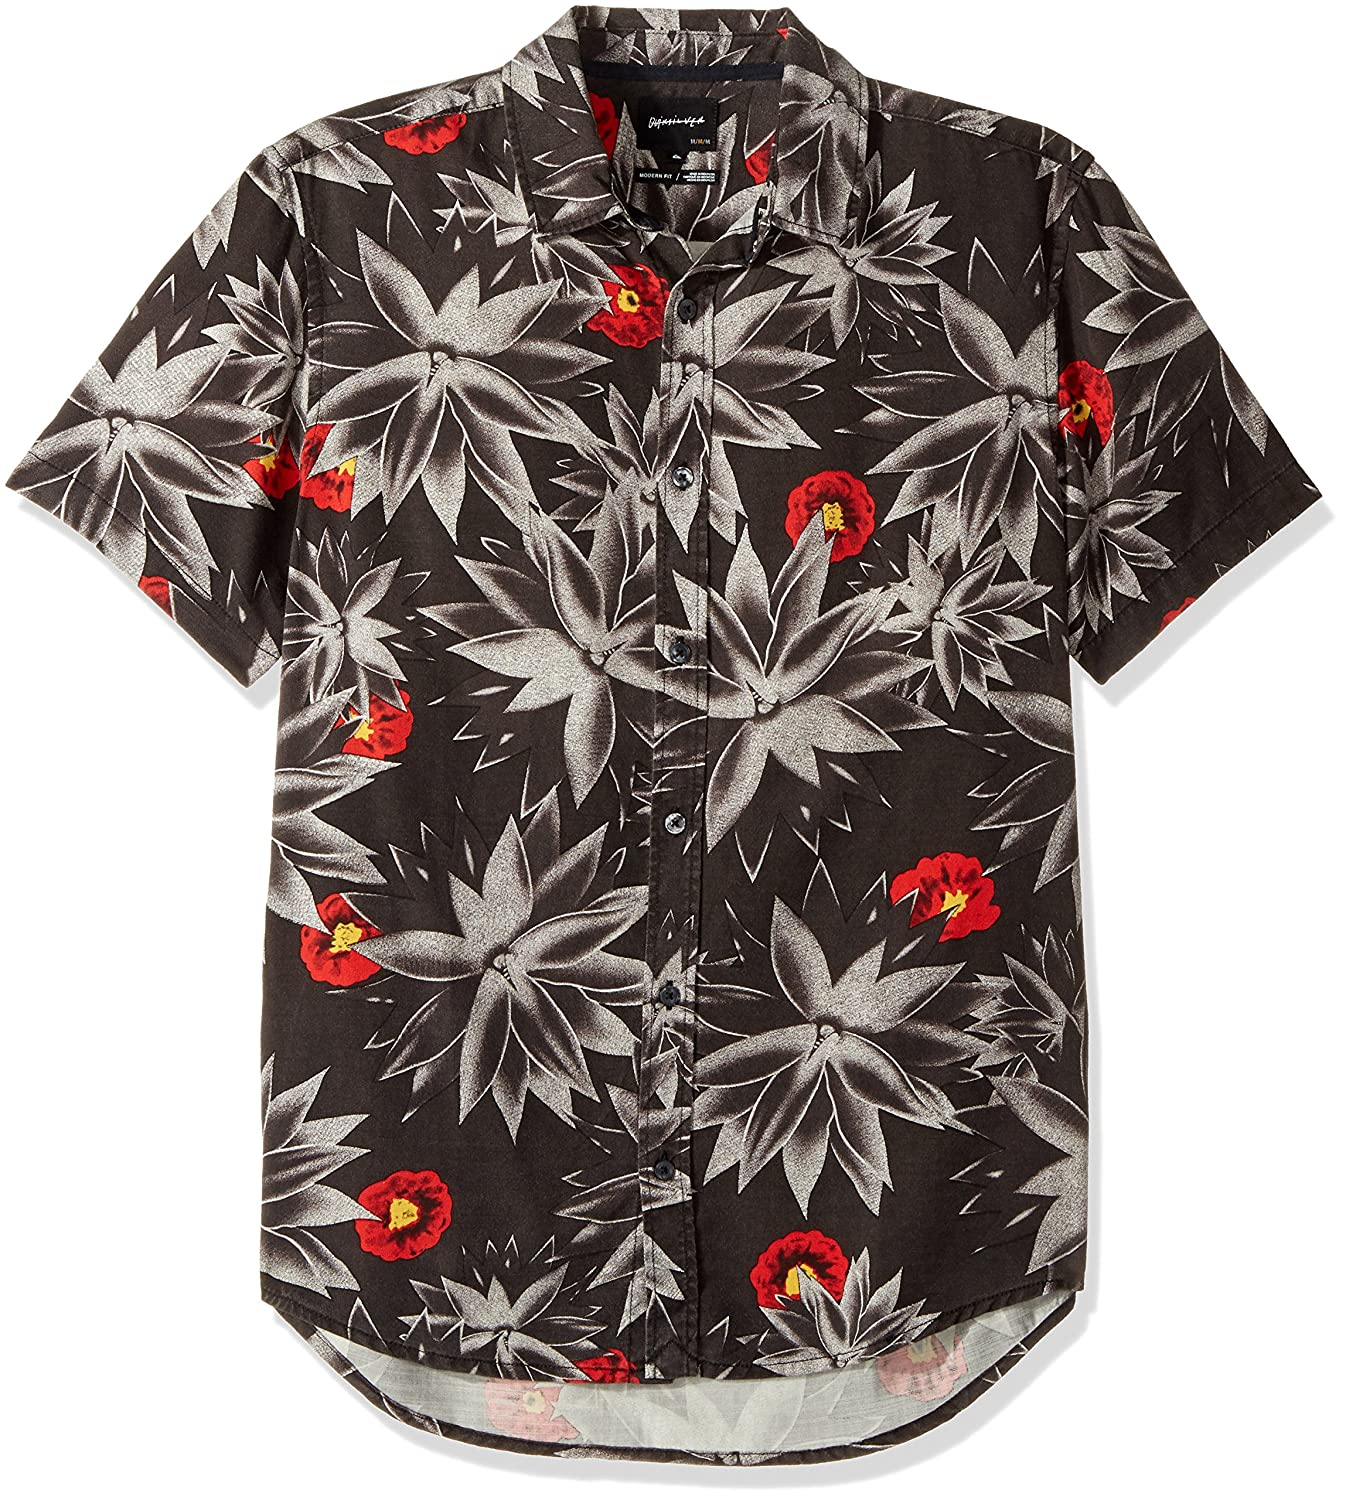 5d86a4cd6 Amazon.com: Quiksilver Men's Agave Shirt: Clothing